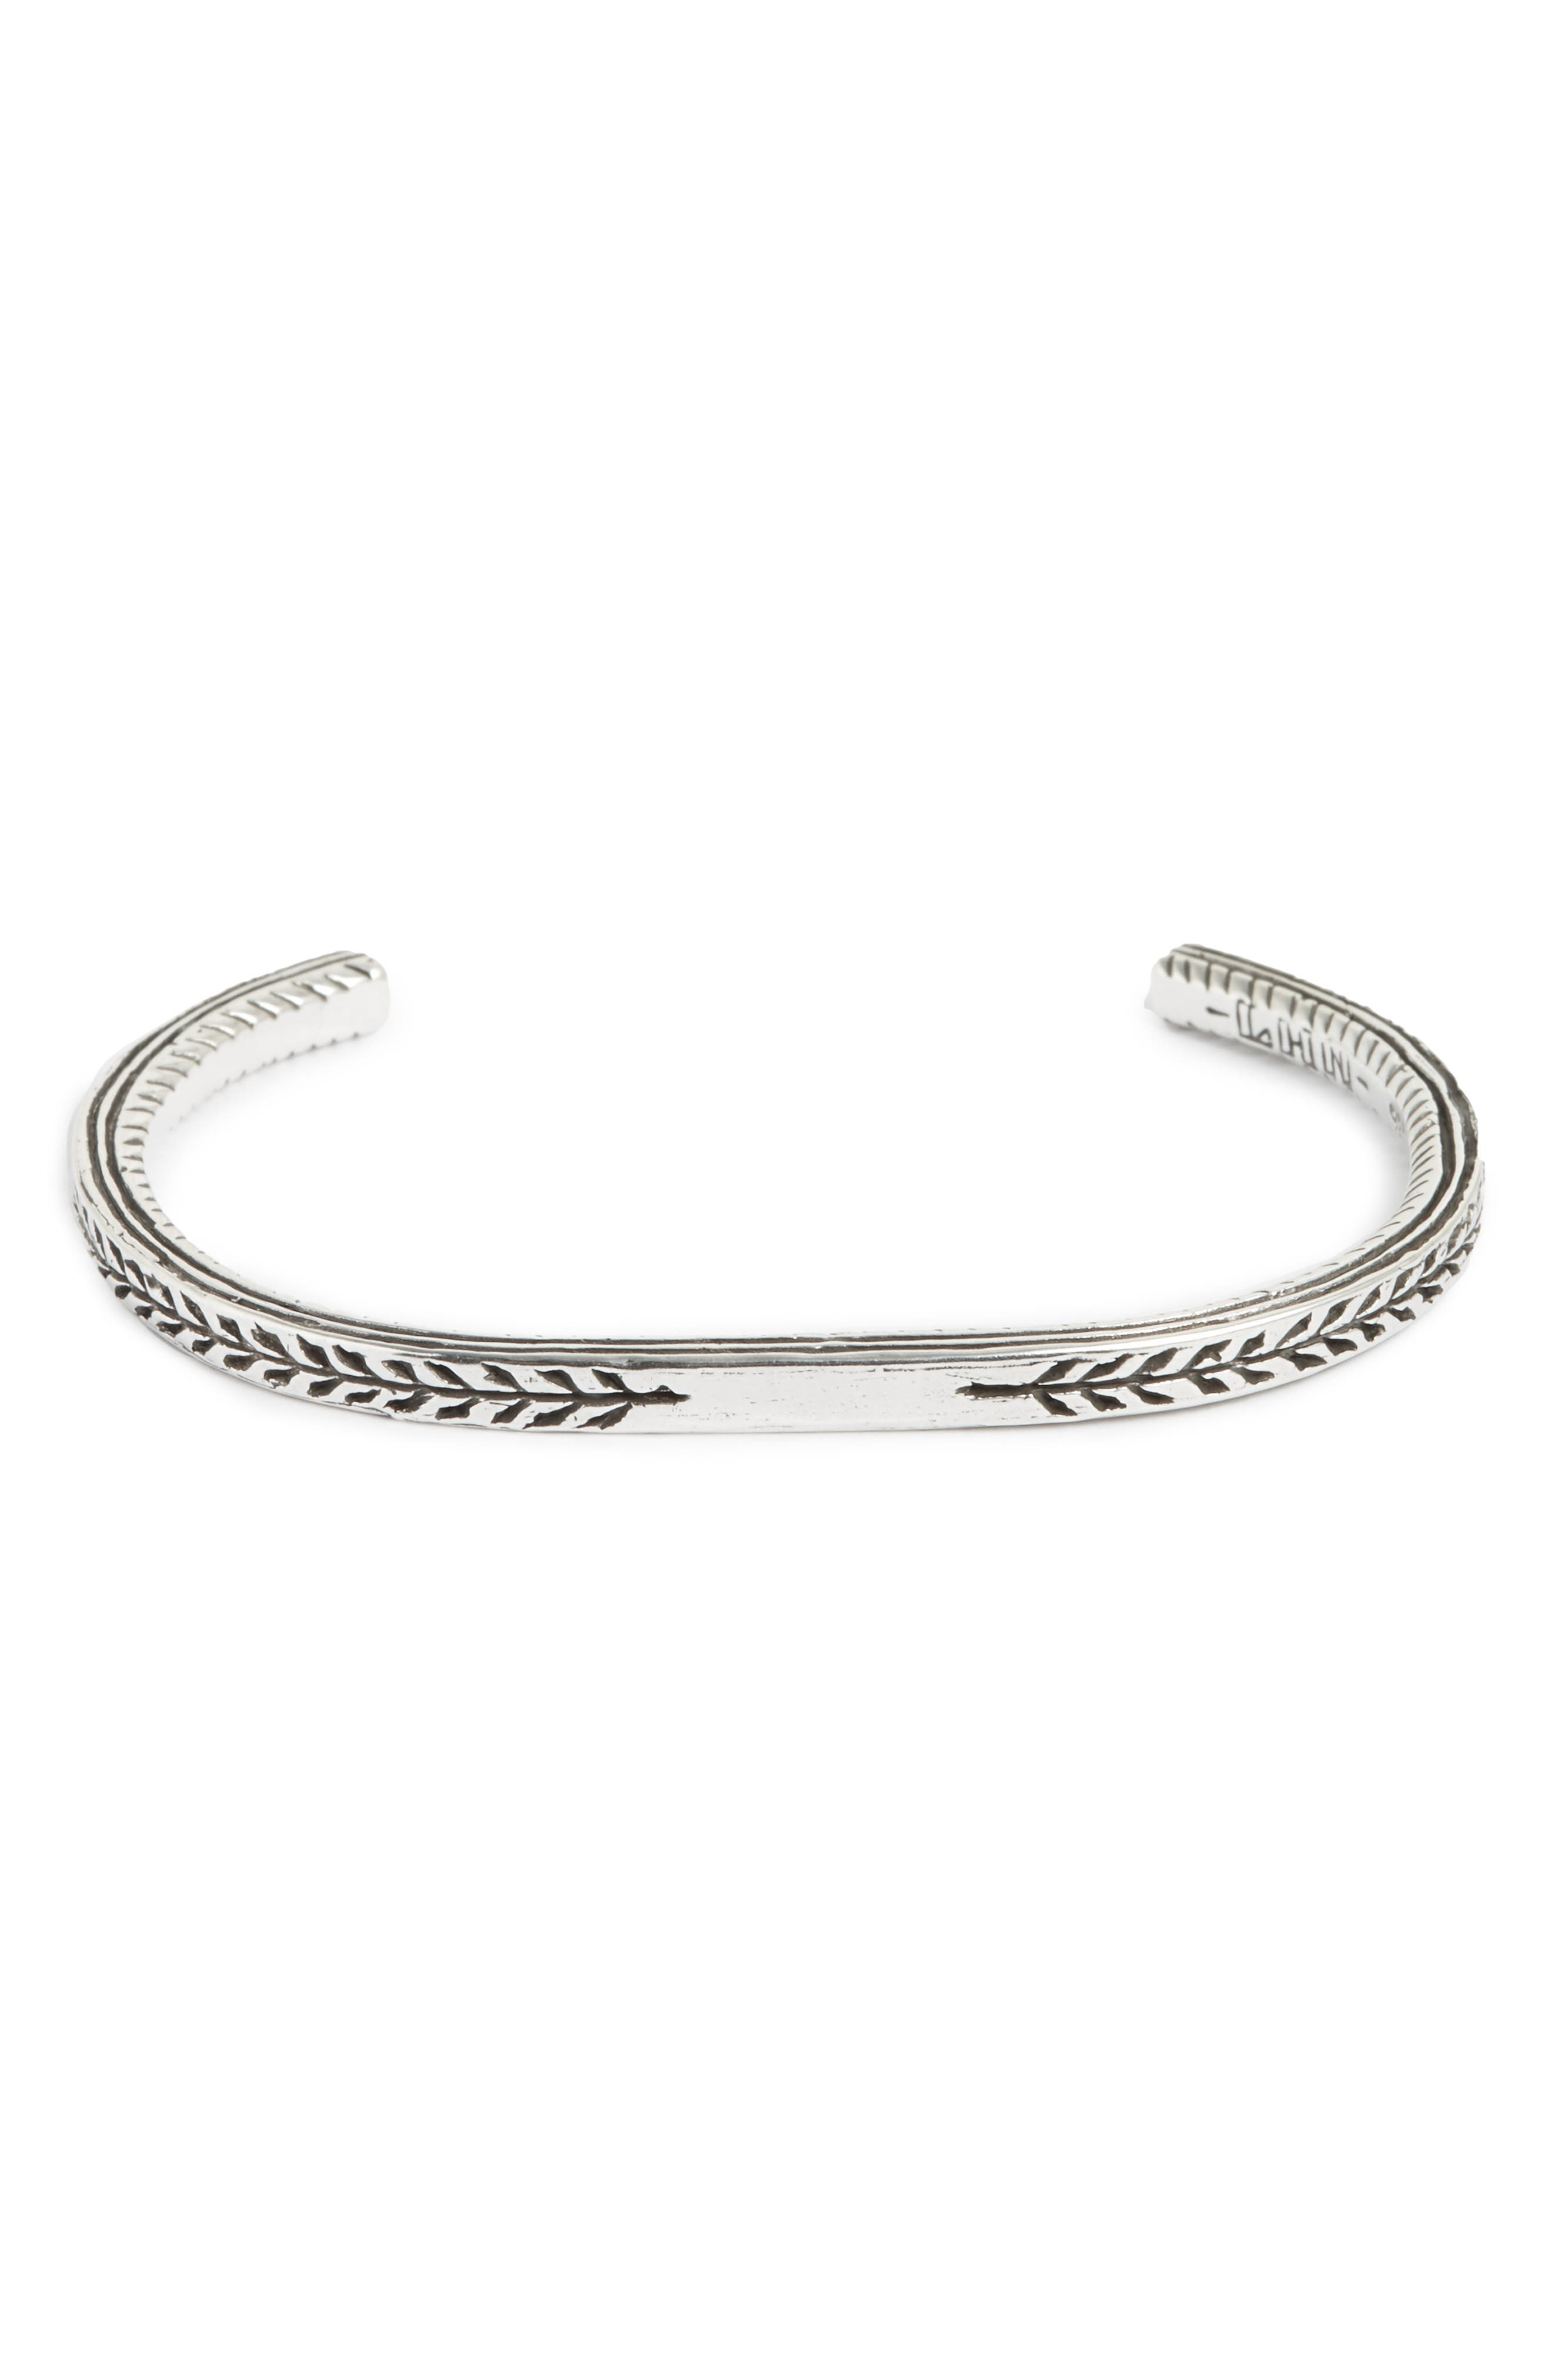 Pantheon Sterling Silver Cuff Bracelet,                         Main,                         color, 040